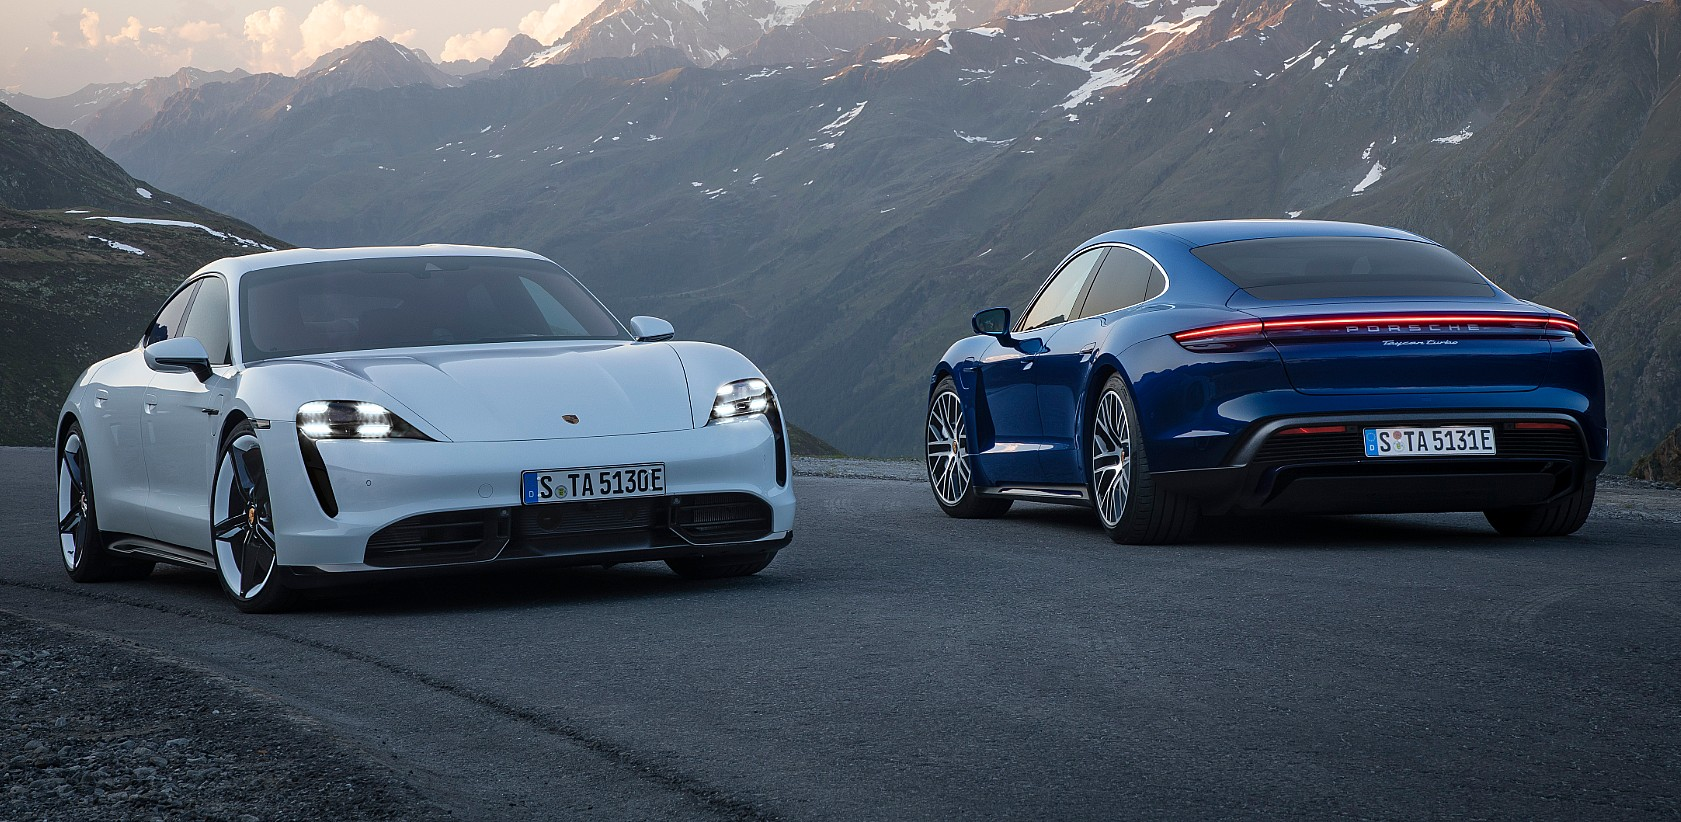 Porsche Taycan Turbo vs Turbo S Price, performance, and